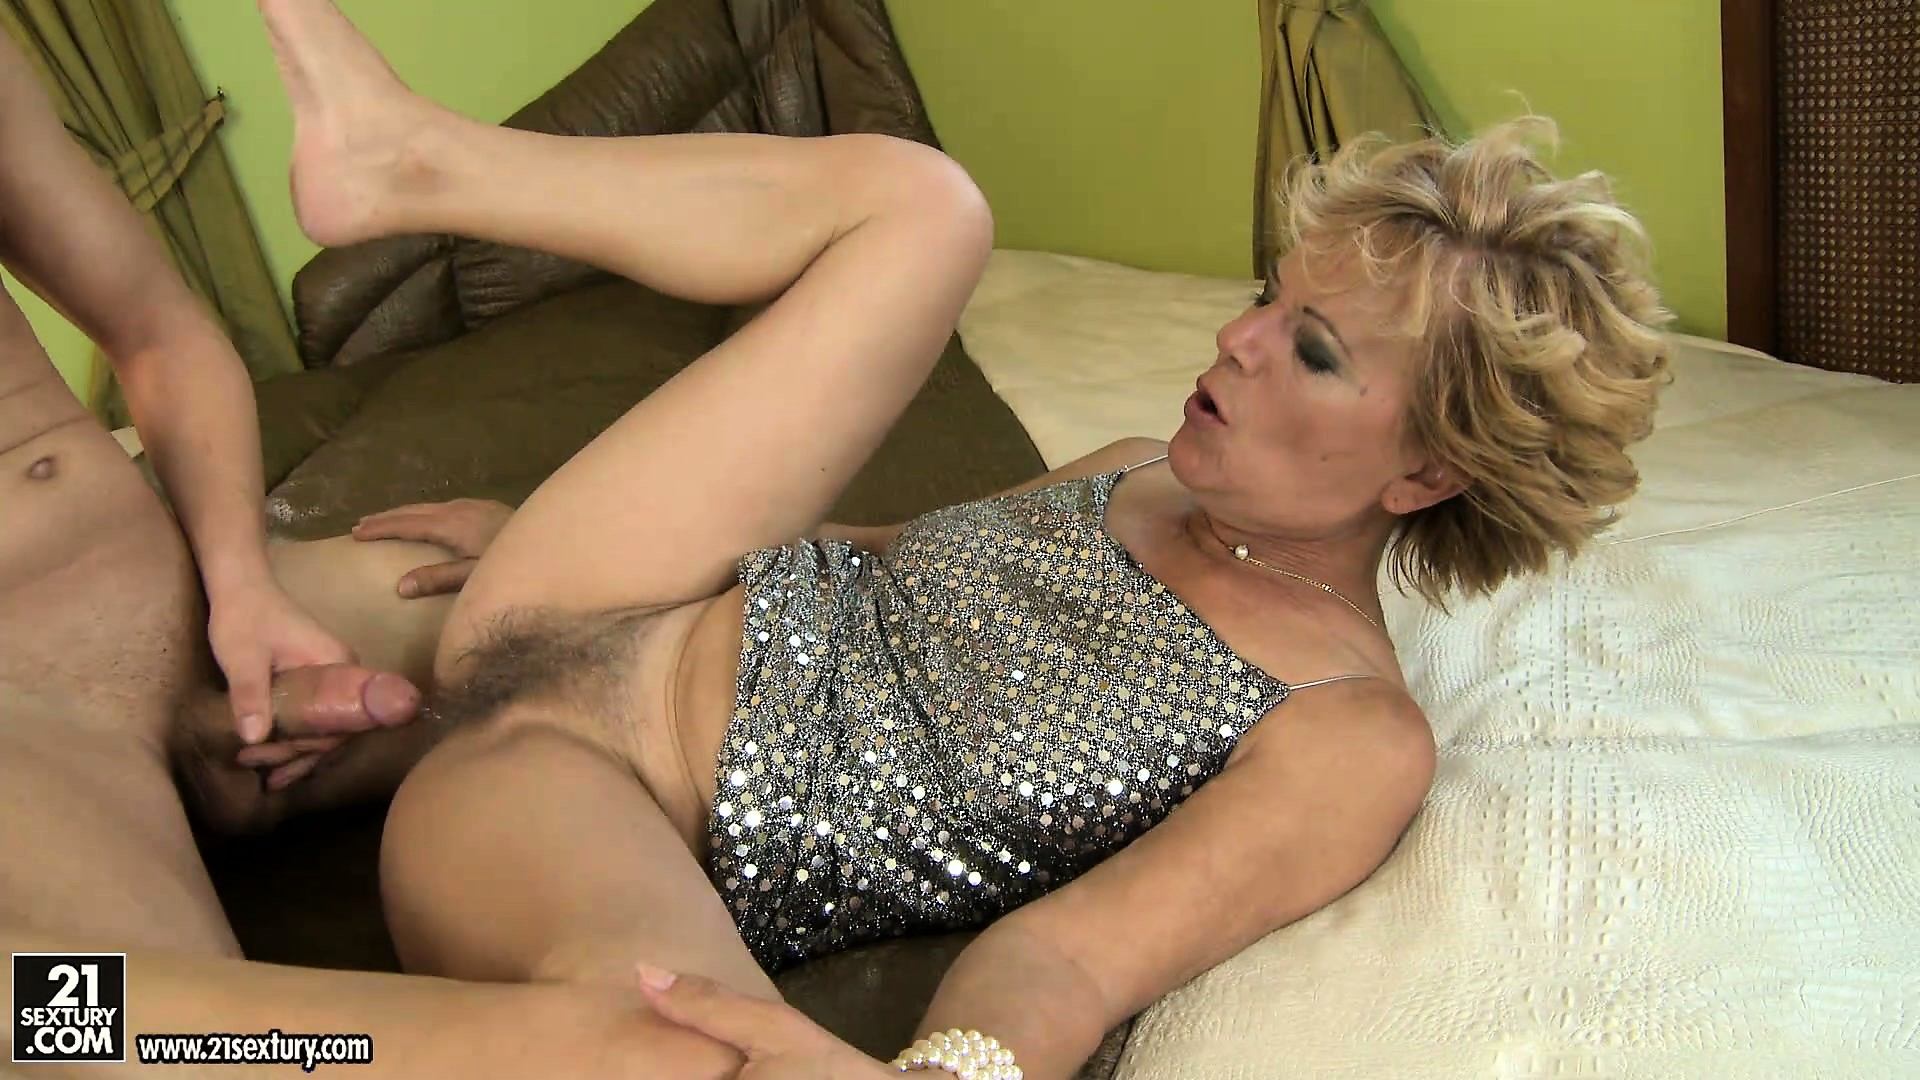 Dirty mature mom seduces young girl